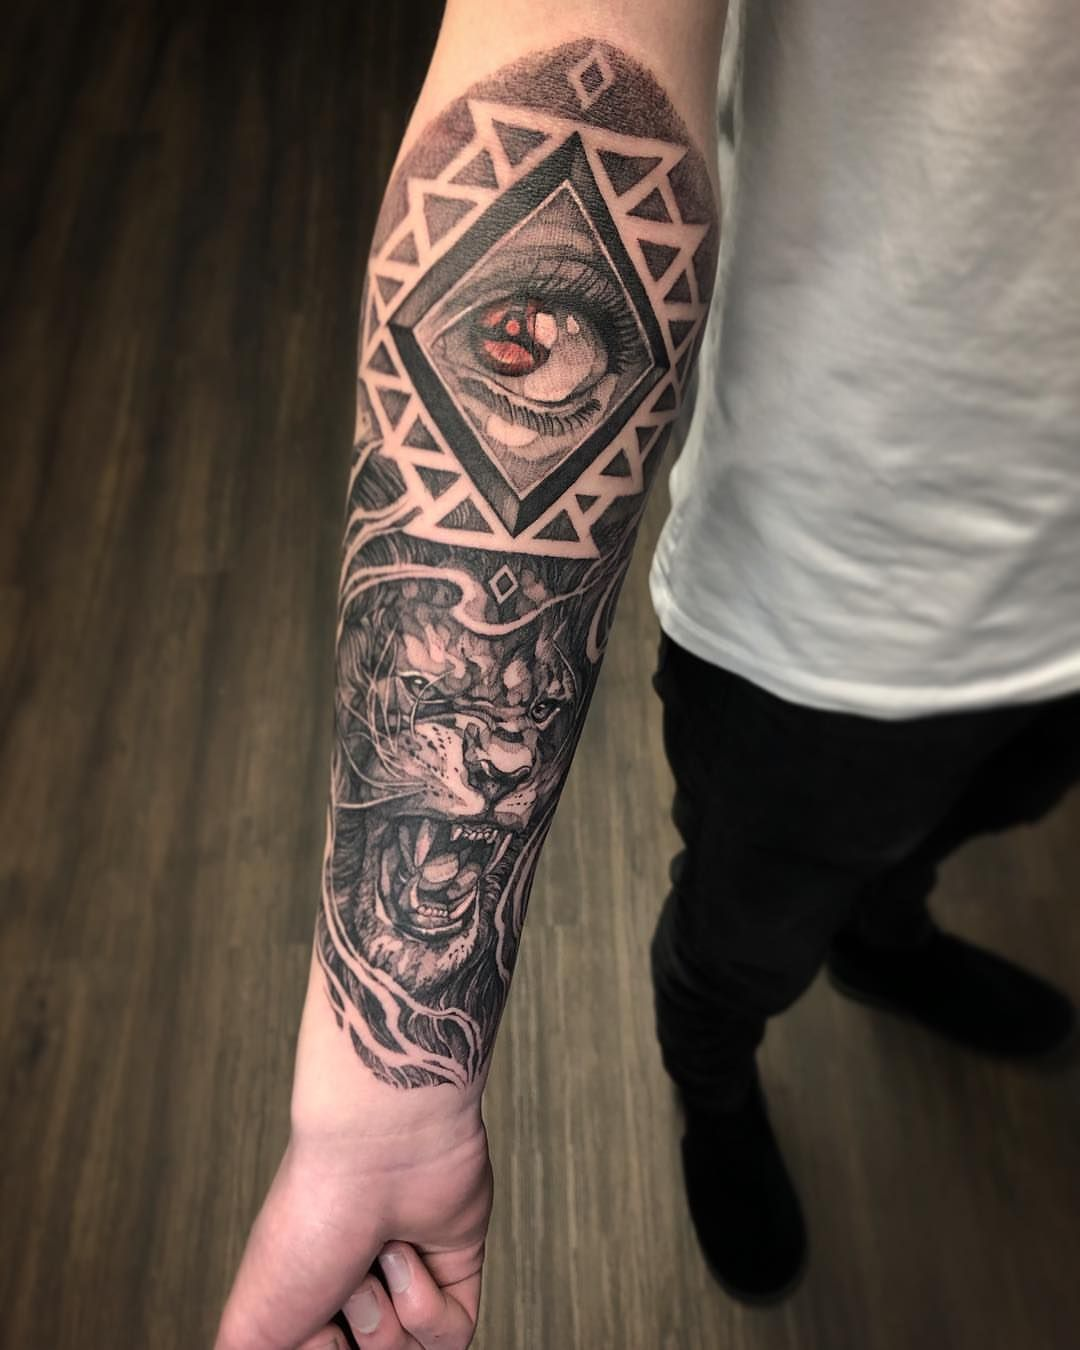 Pin by Nellyville on Tattoos in 2020 Tattoos, Naruto